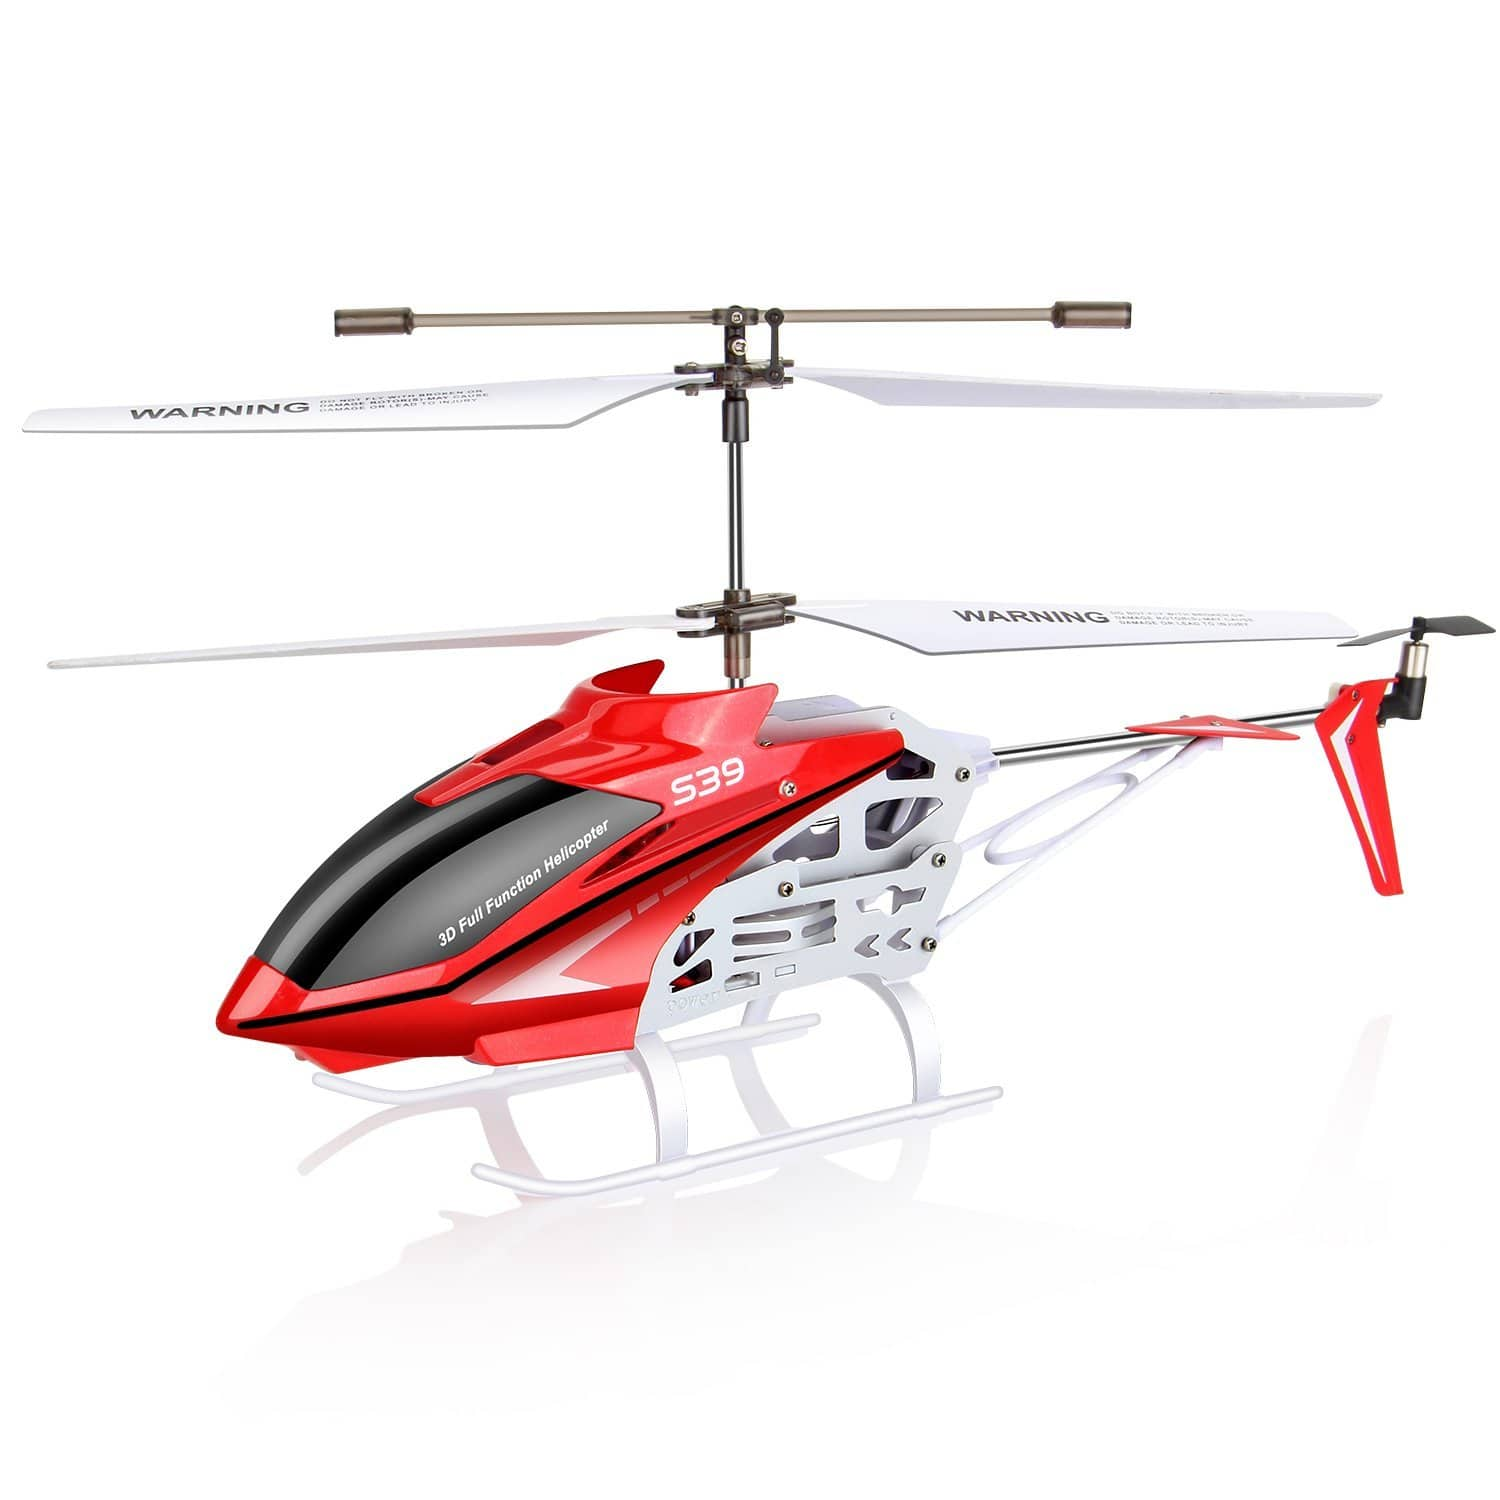 Syma S39 RC Remote Control Helicopter with GYRO - 2.4G 3CH-Red @Amazon $19.80